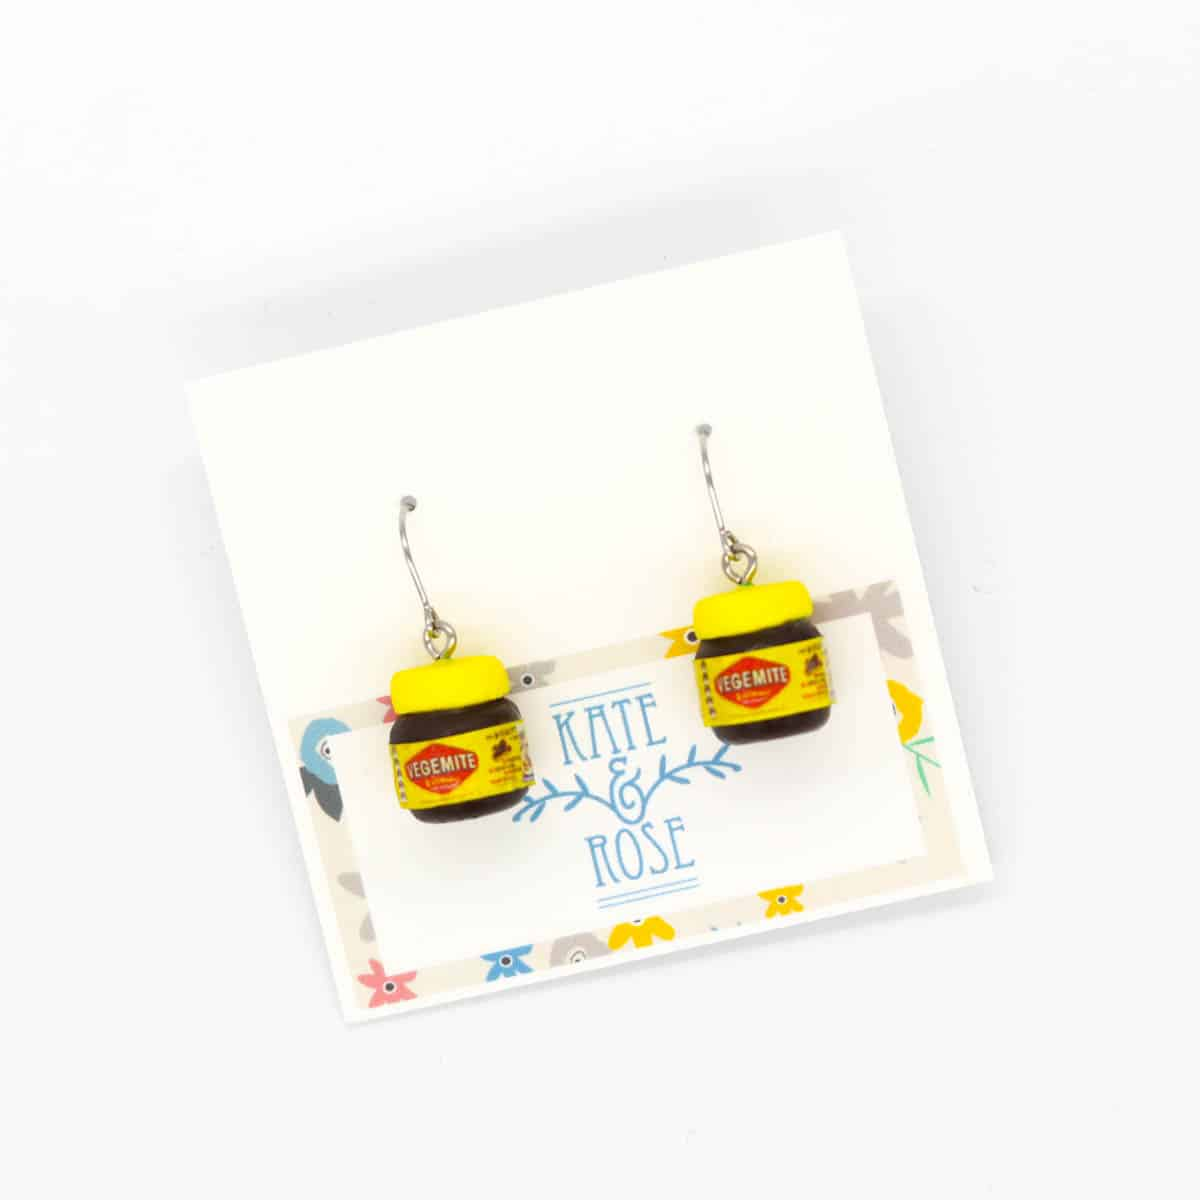 Vegemite Drop Earrings By Kate And Rose (Fitzroy)